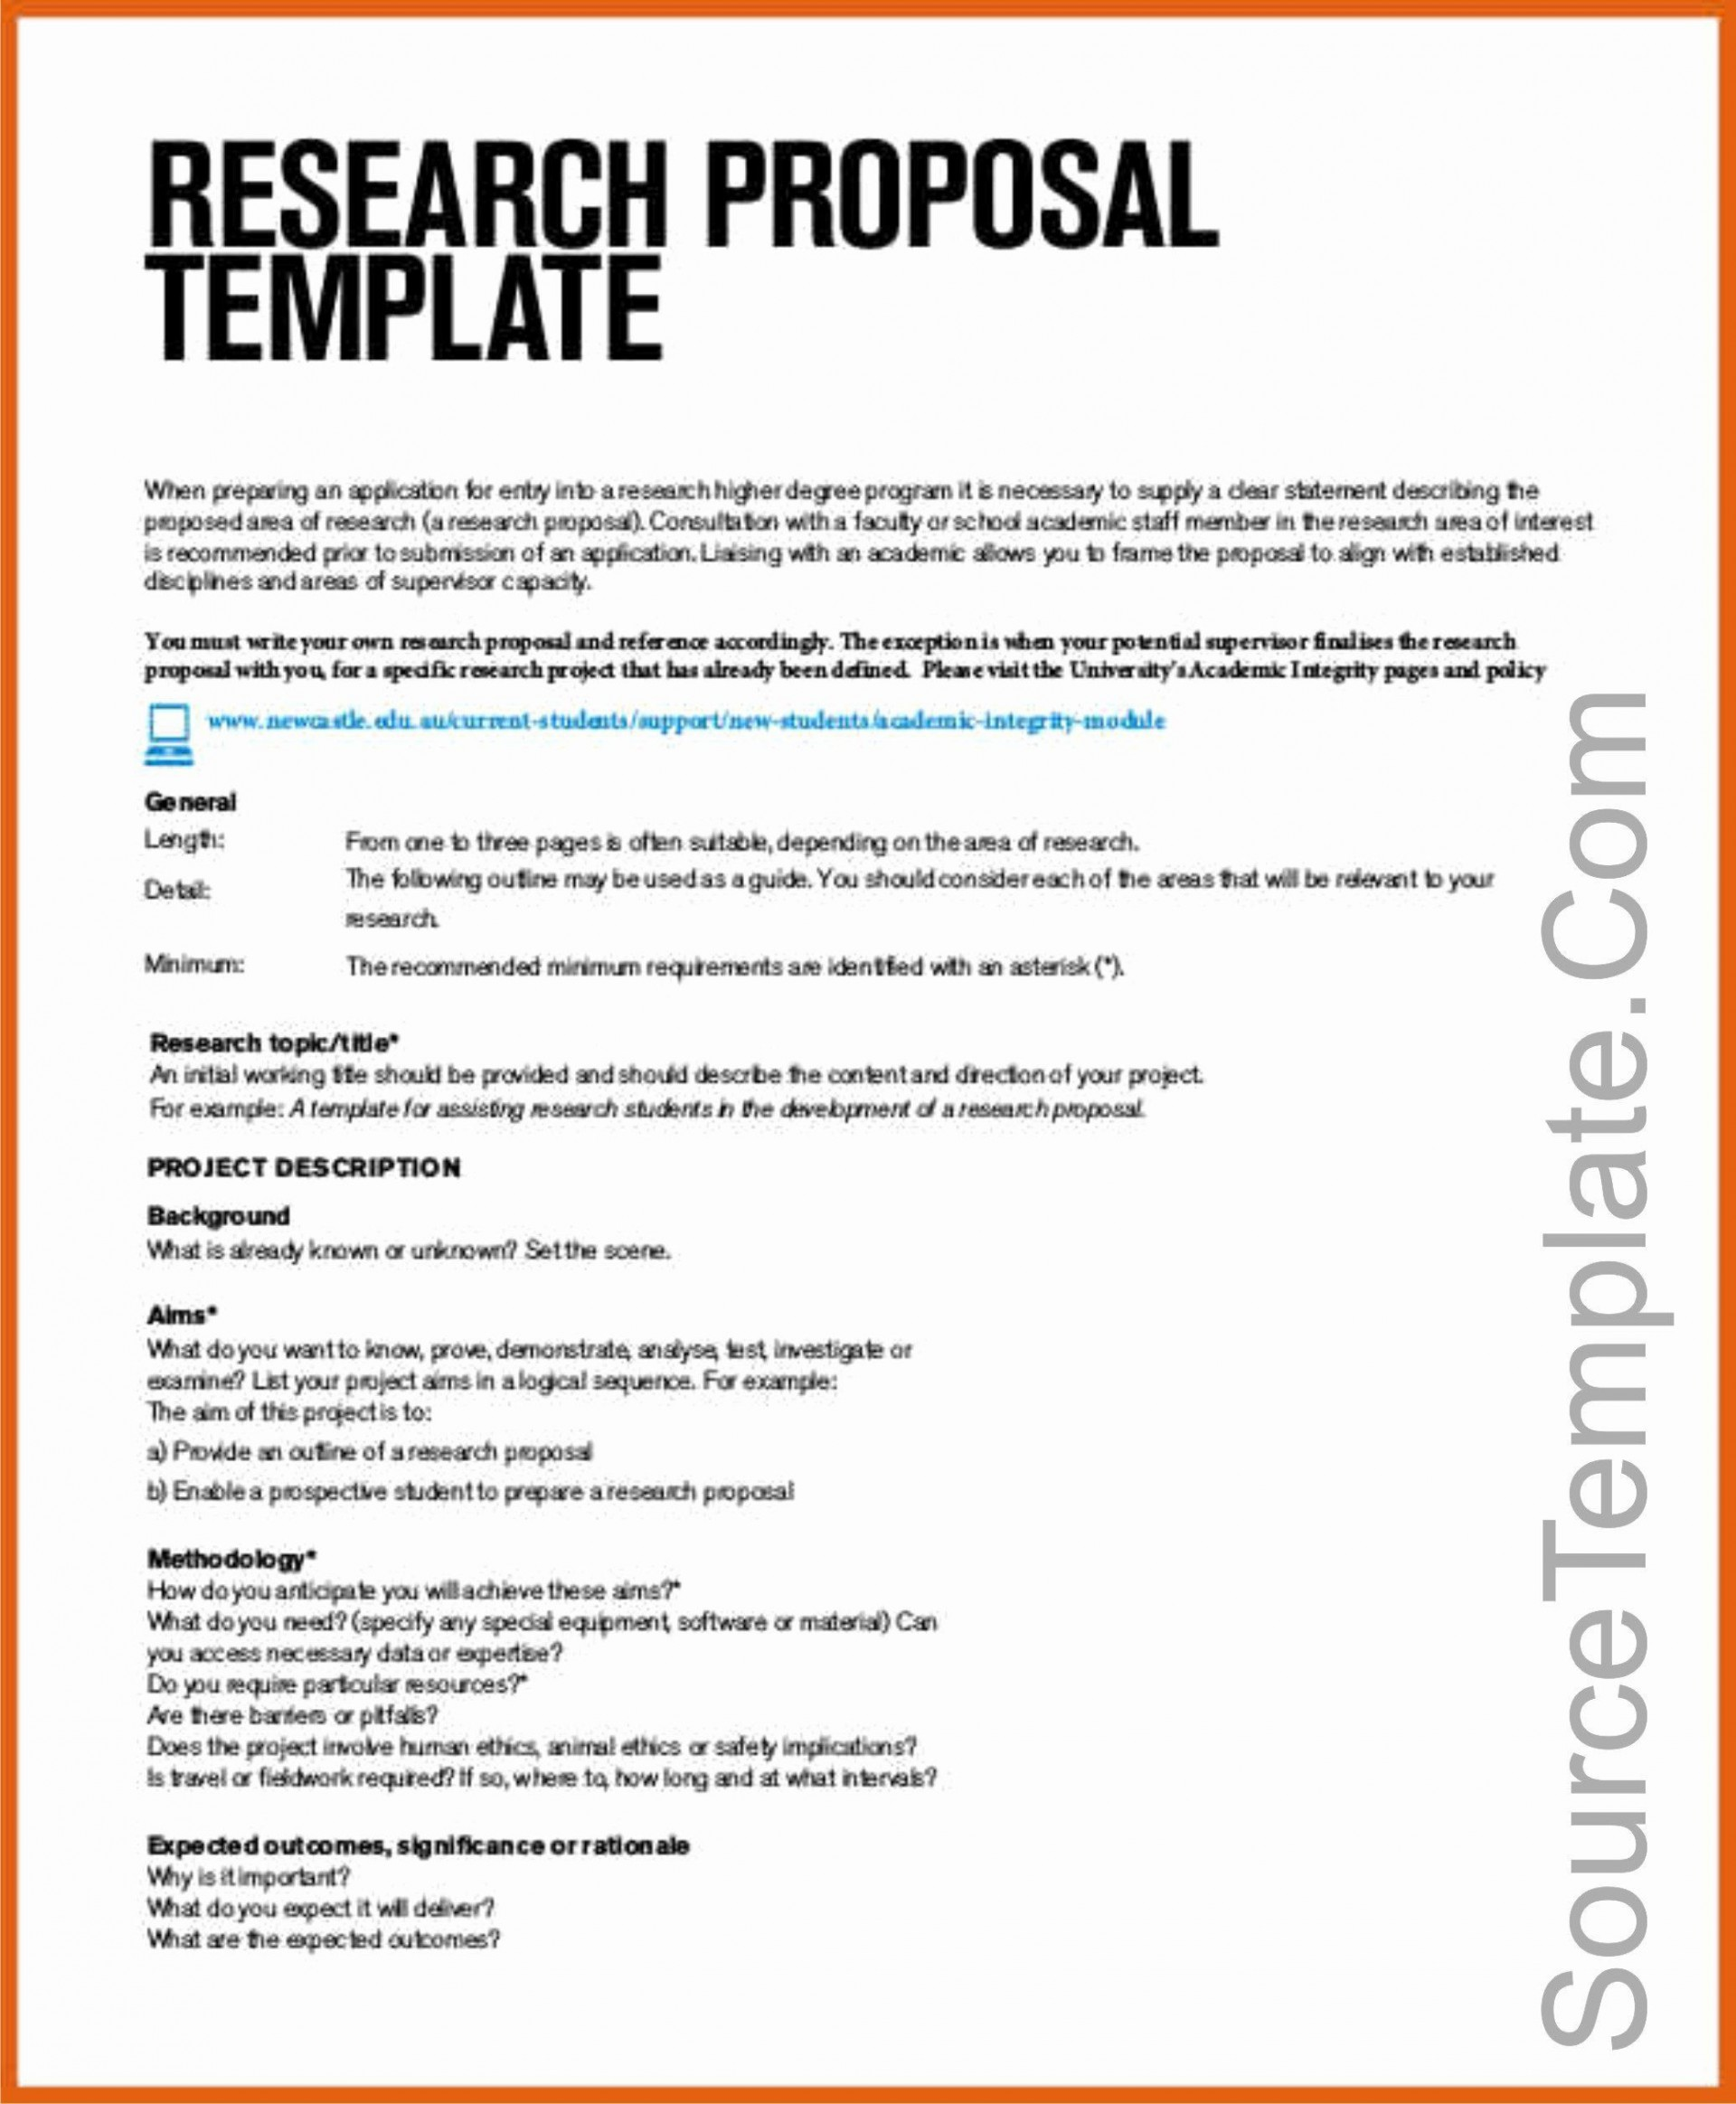 003 Dreaded Research Topic Proposal Template Inspiration  Format Paper Example1920